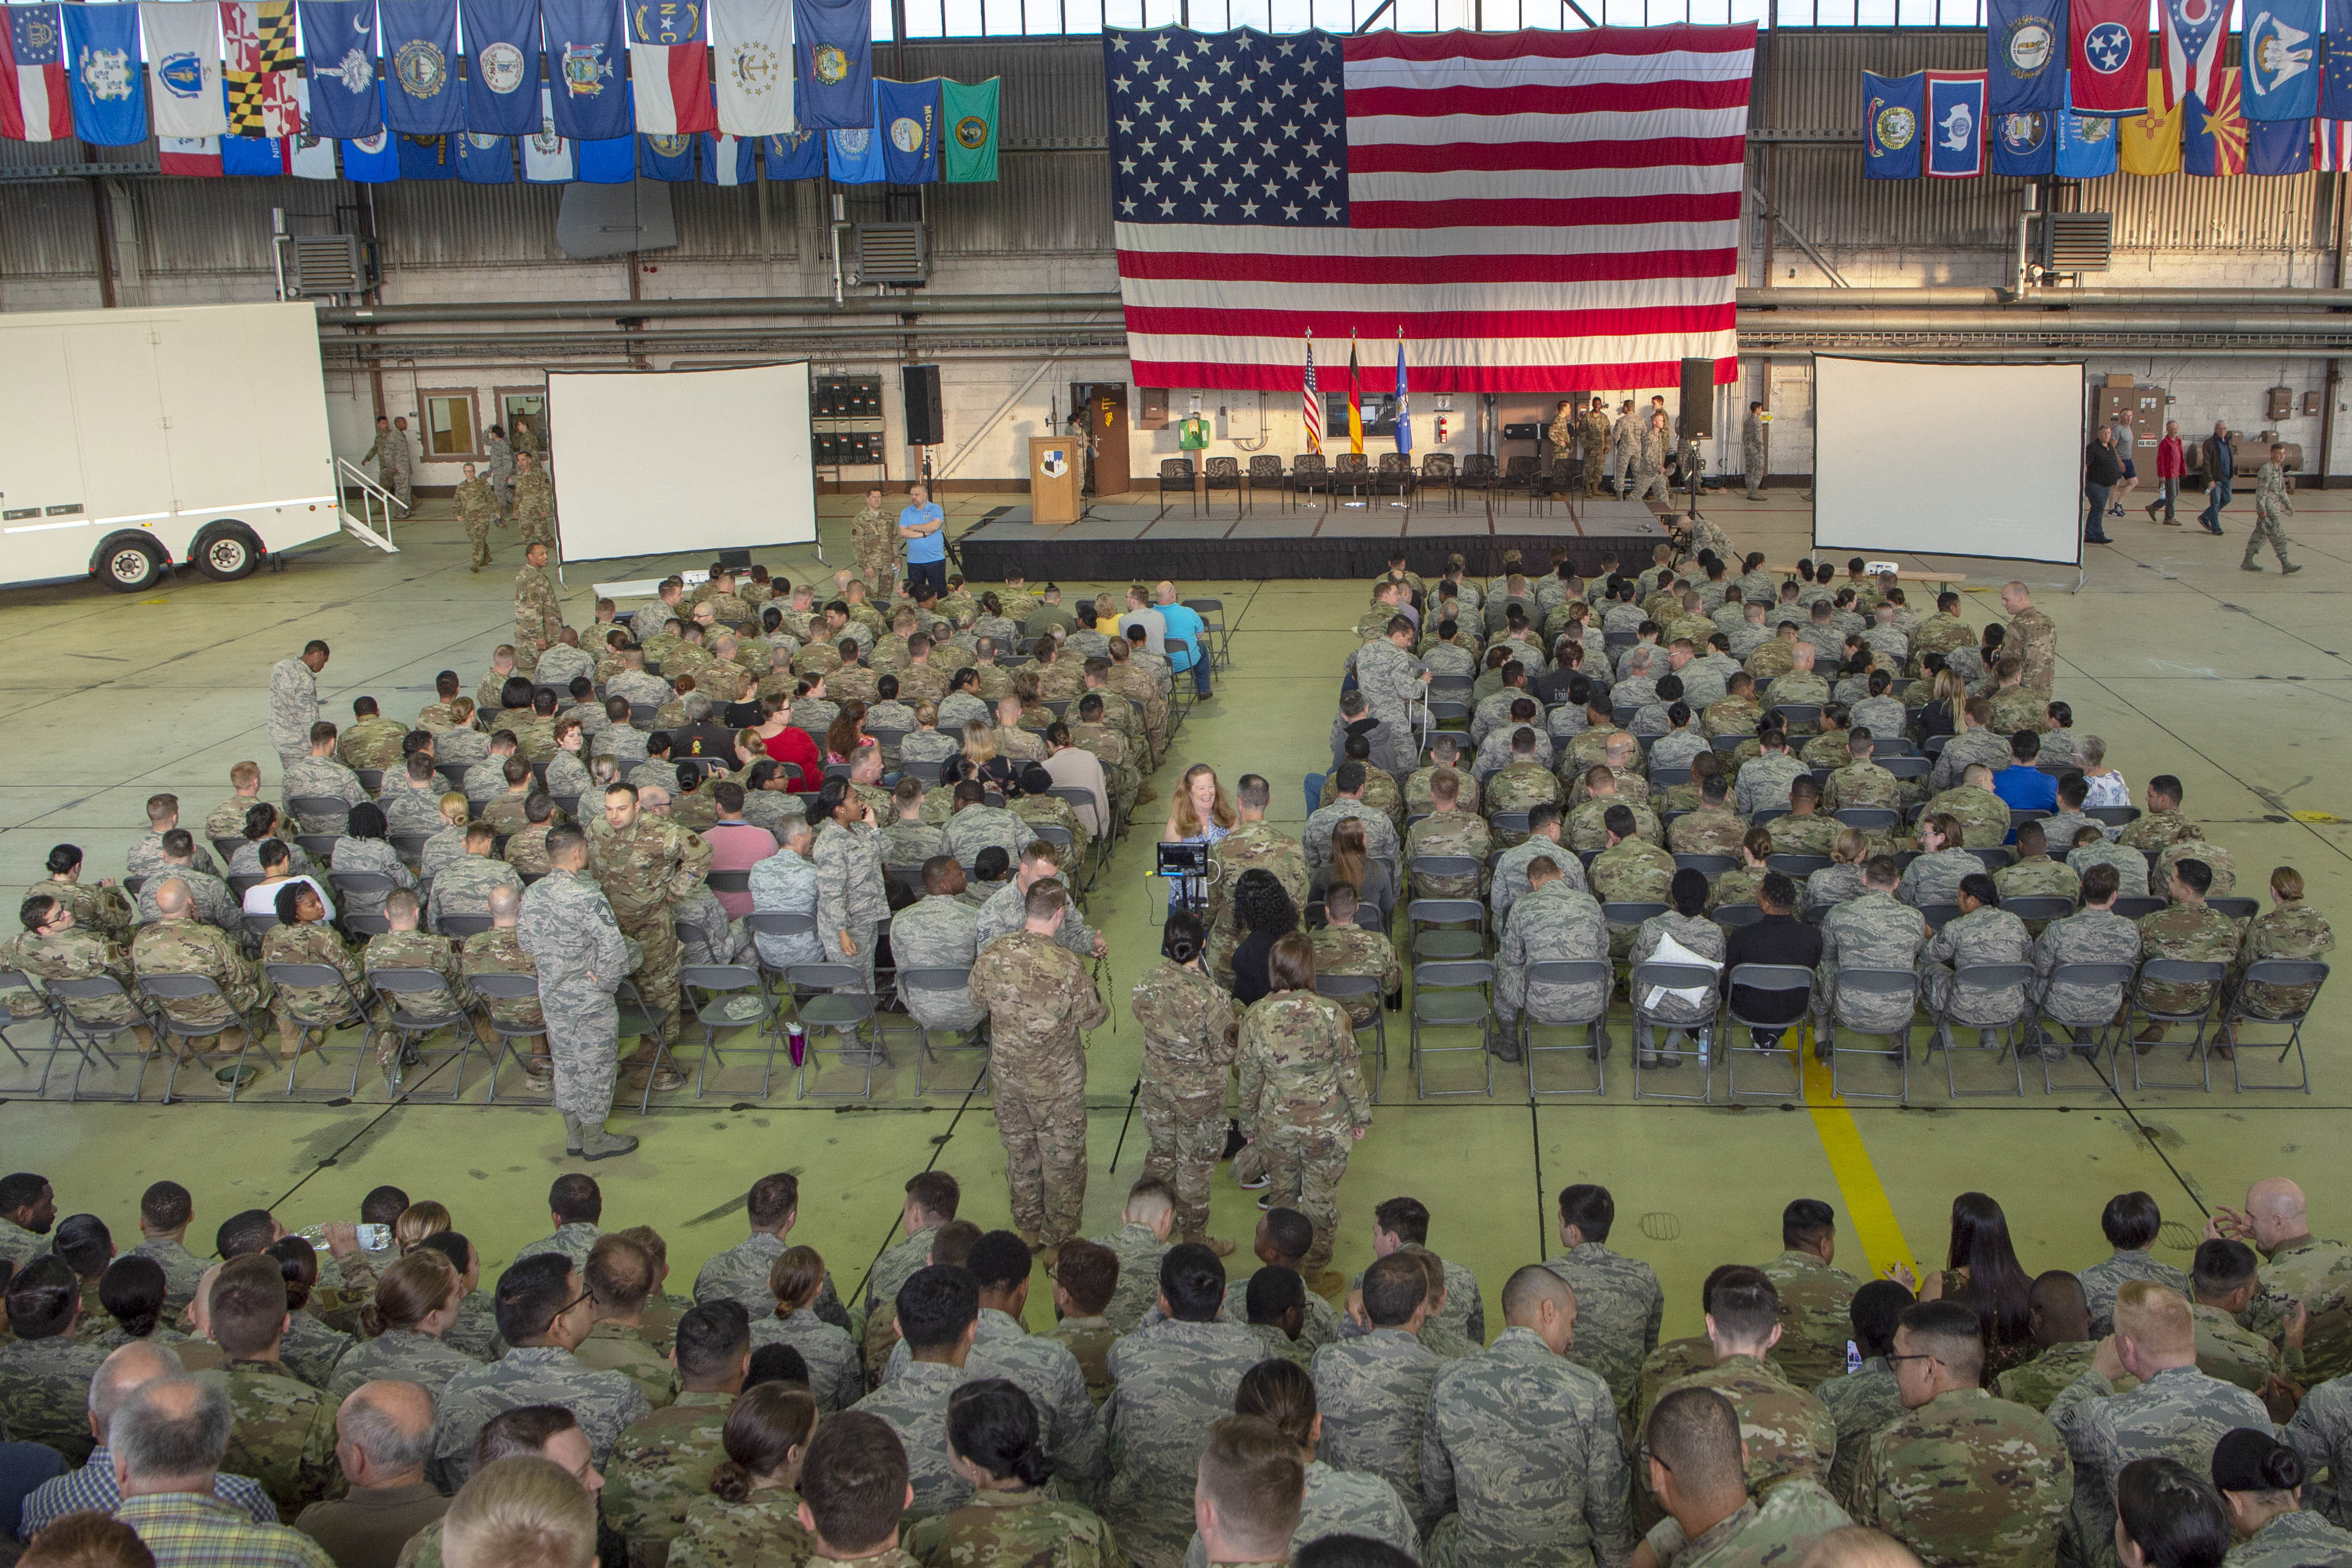 Caption: Members of the 52nd Fighter Wing gather at Spangdahlem Air Base, Germany for a one-day stand down to discuss mental health issues., Credit:  Kyle Cope / U.S. Air Force